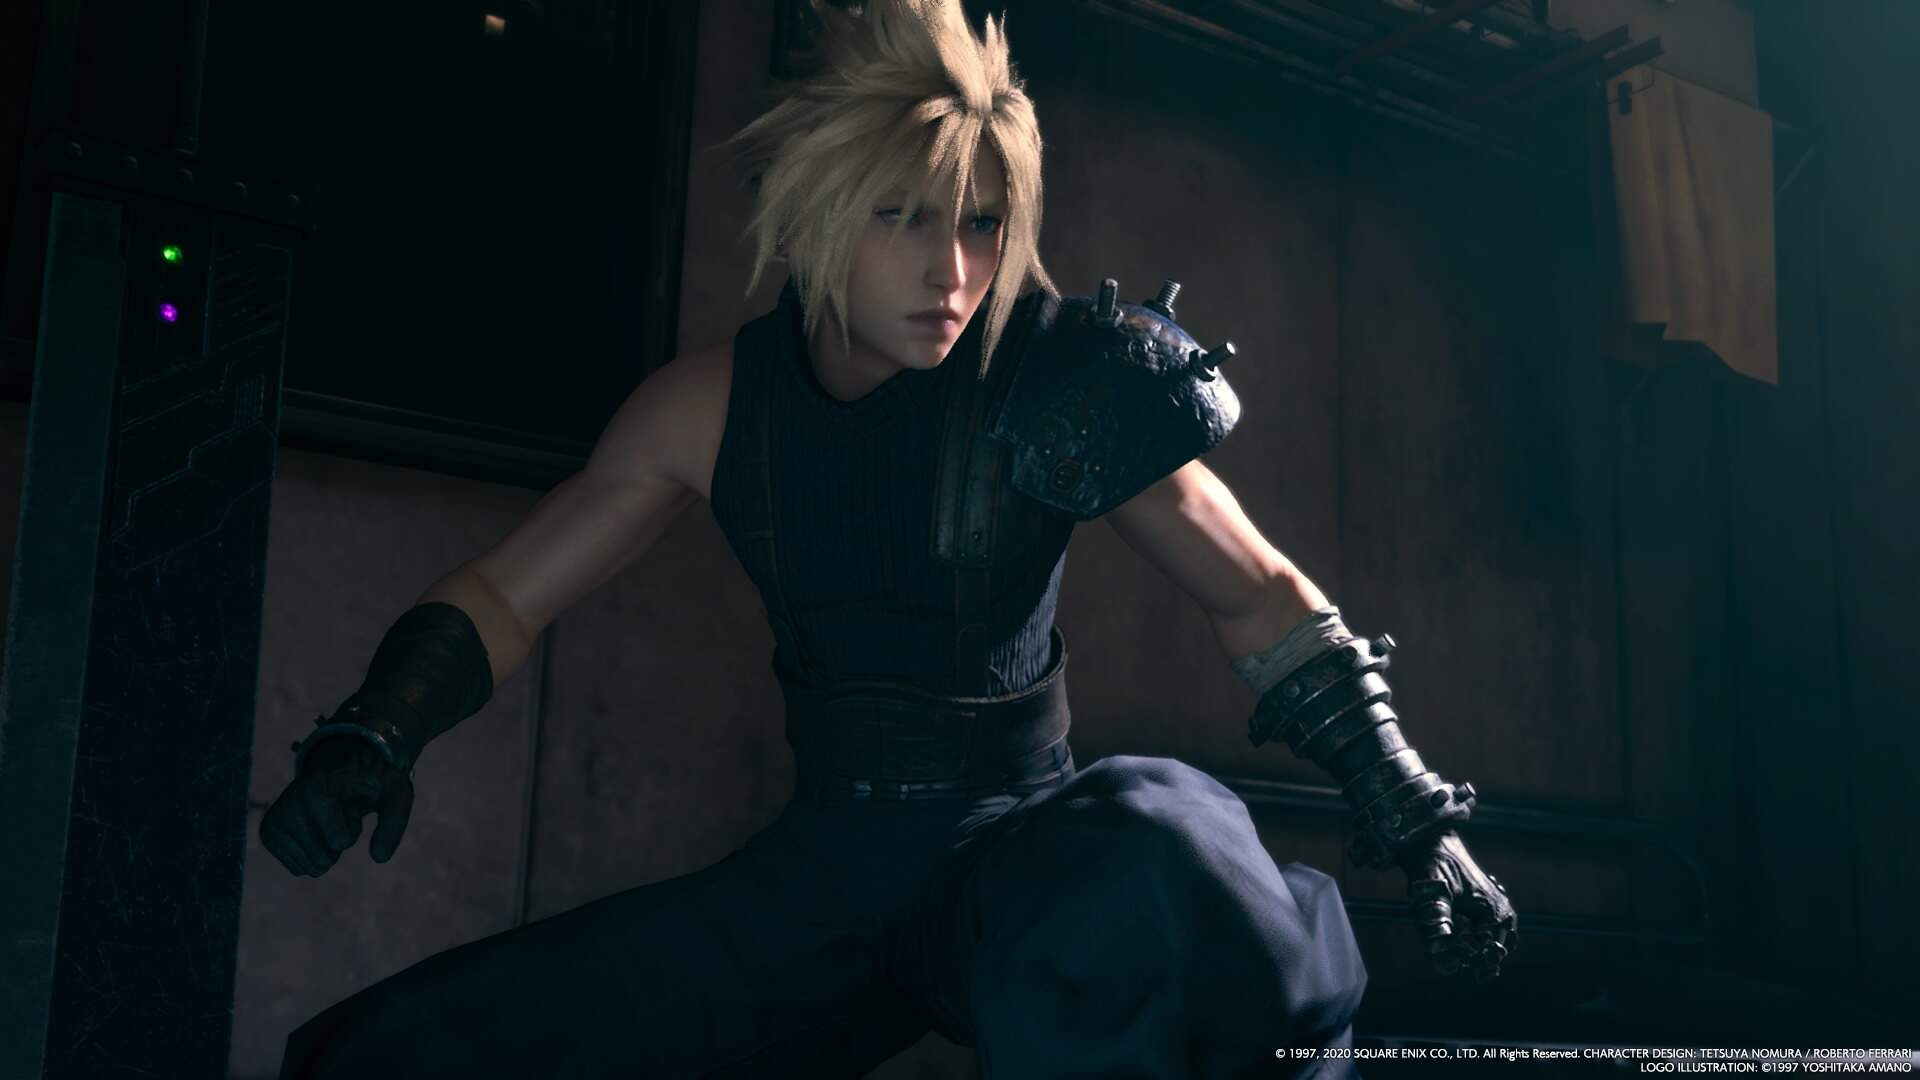 Final Fantasy 7 Remake: Where to Find Kyrie as Part of the Tomboy Bandit Quest